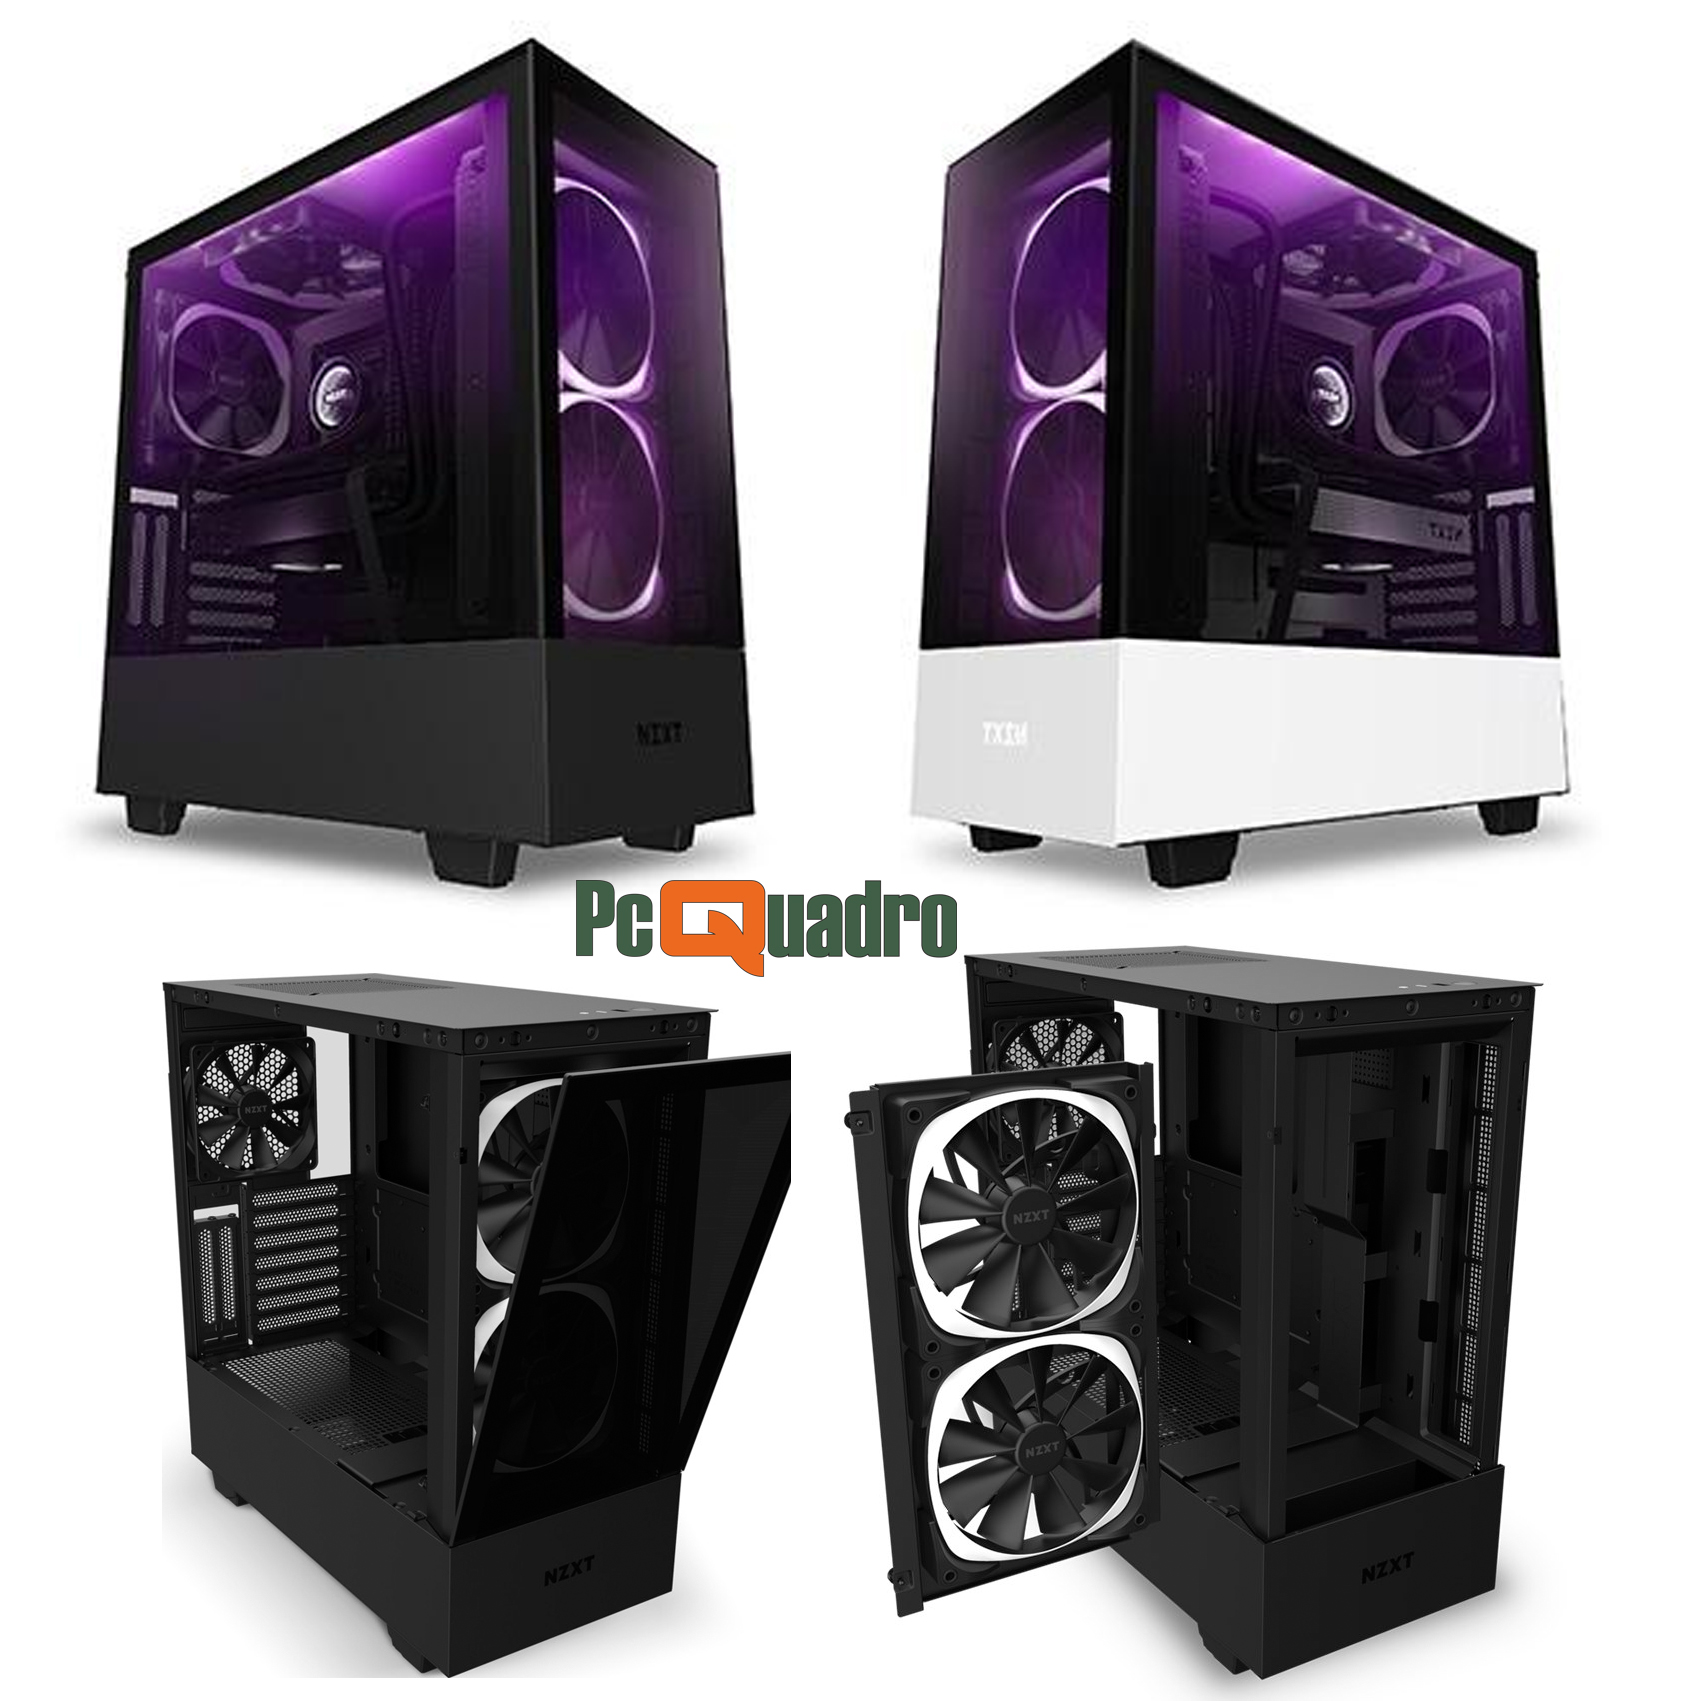 Middle tower - H510 ELITE - Black/Black (NO Alimentatore)